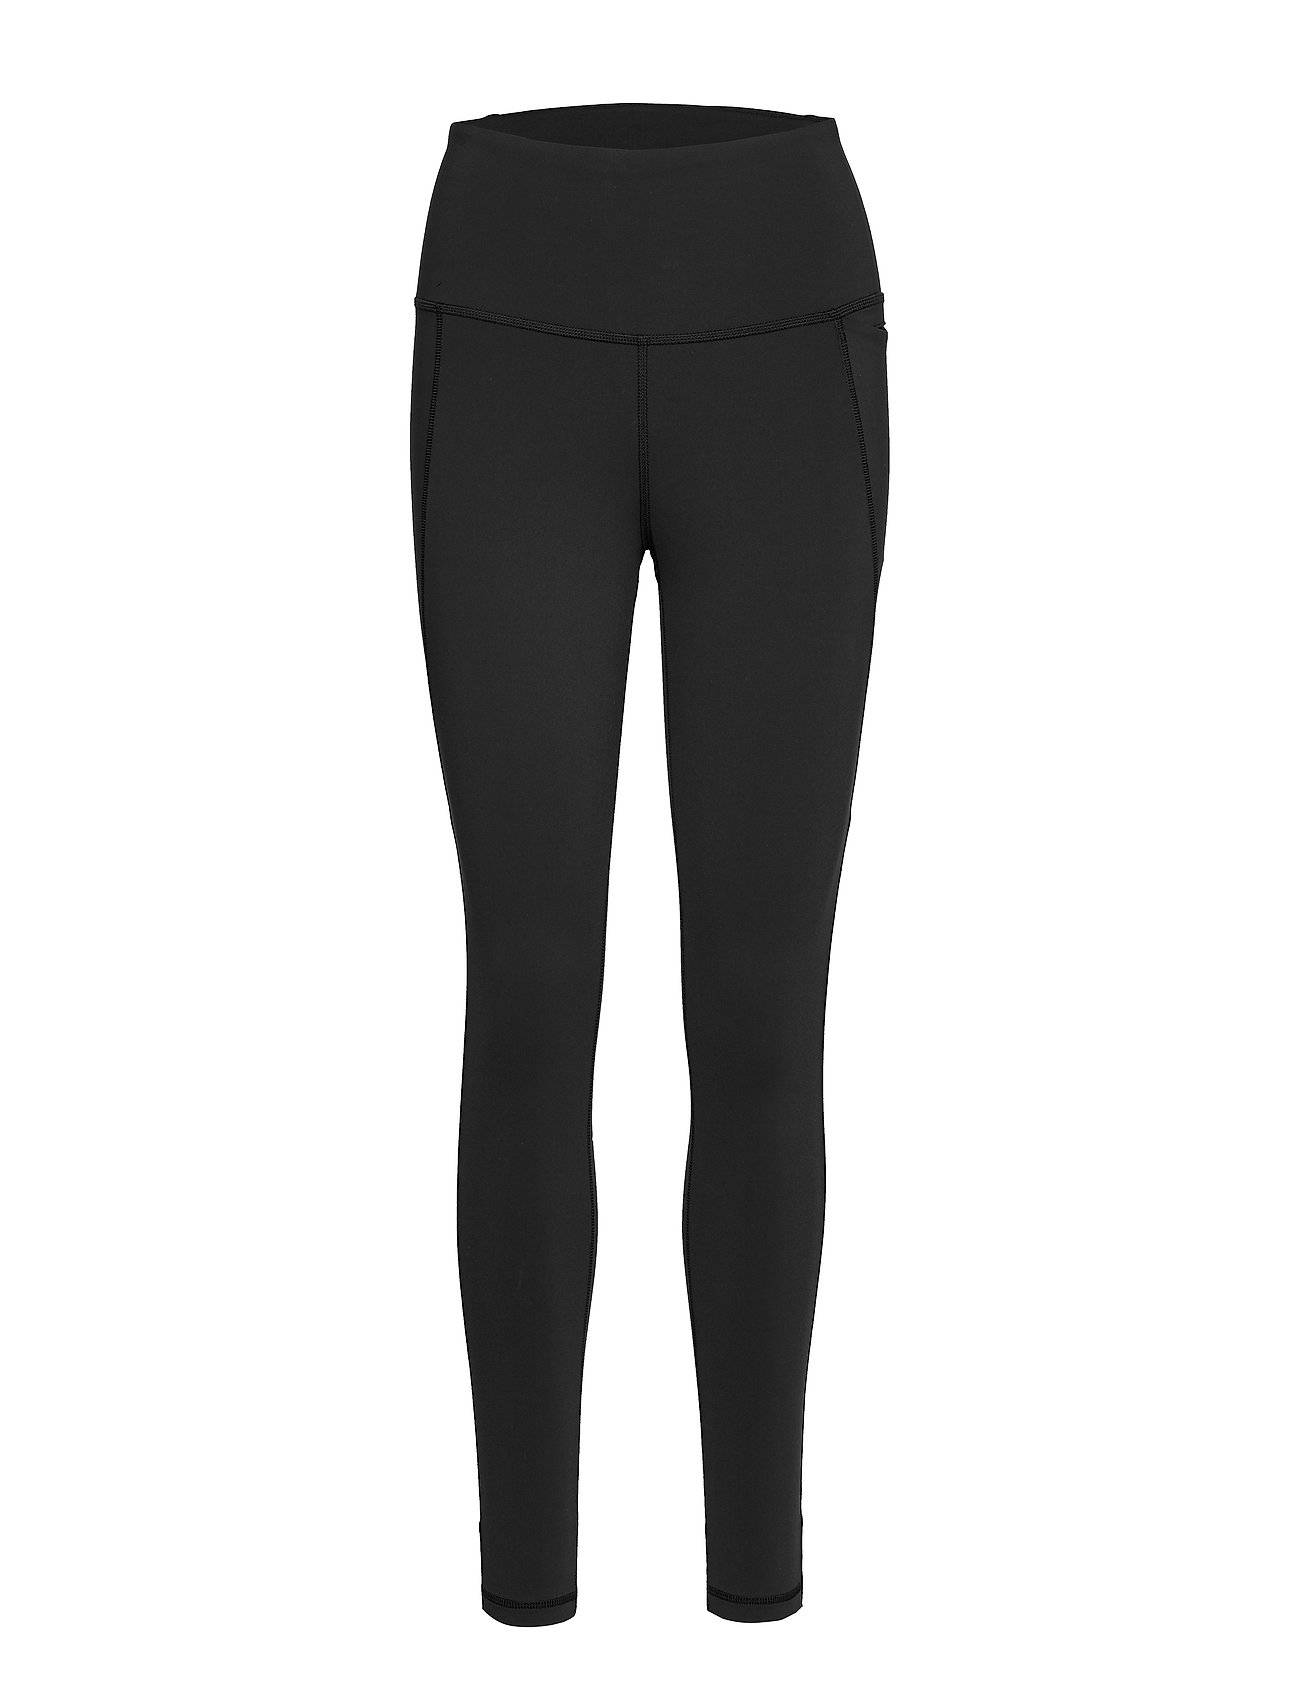 Reebok Performance Ts Lux Highrise Tight 2.0 Running/training Tights Musta Reebok Performance